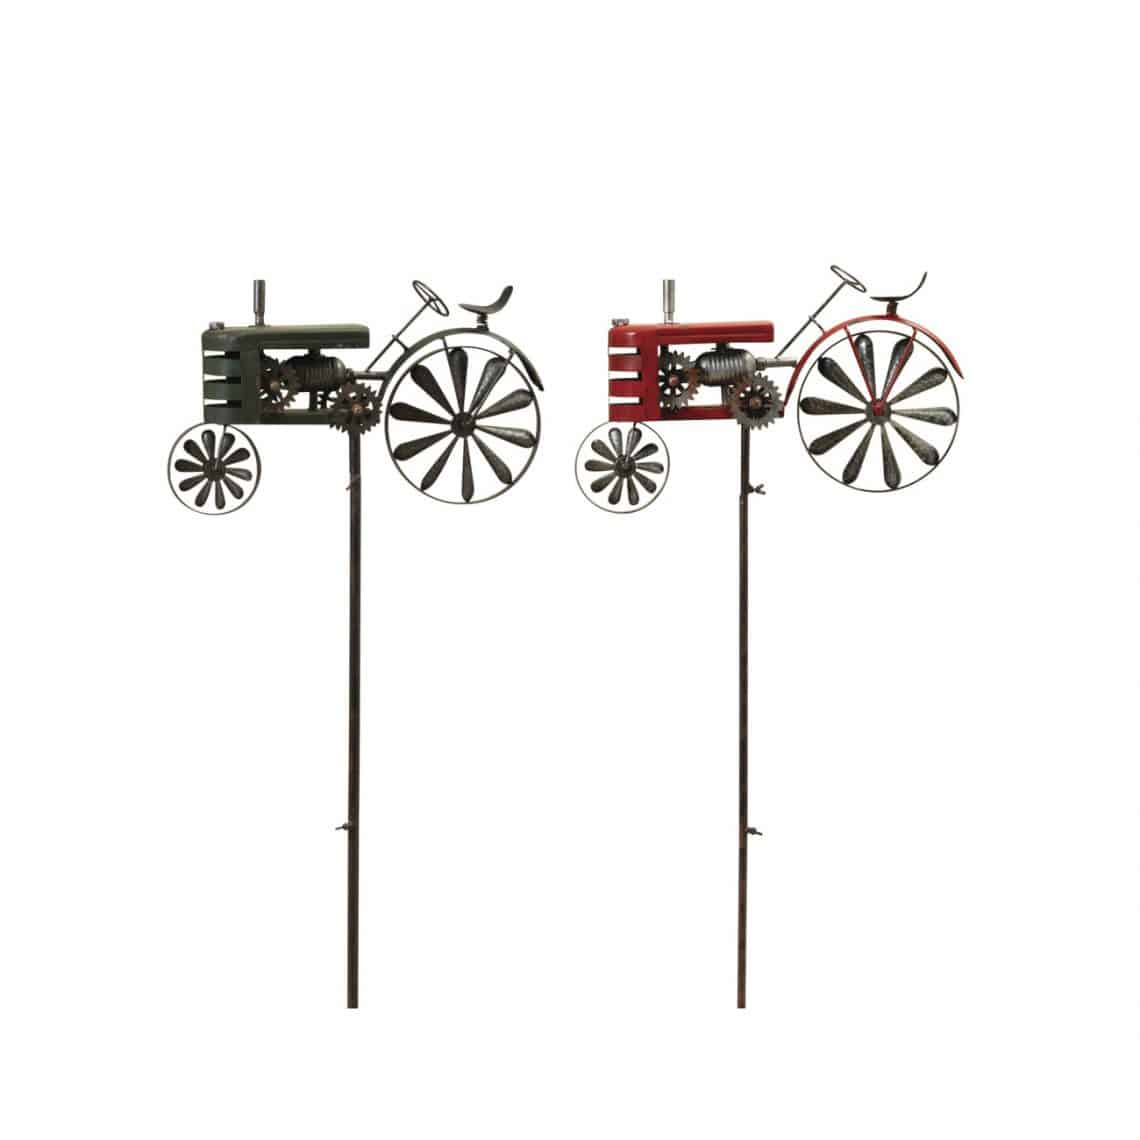 63 Inch Tall Antique Style Metal Tractor Wind Spinner Yard Stakes Set 2 on waterproof outlet